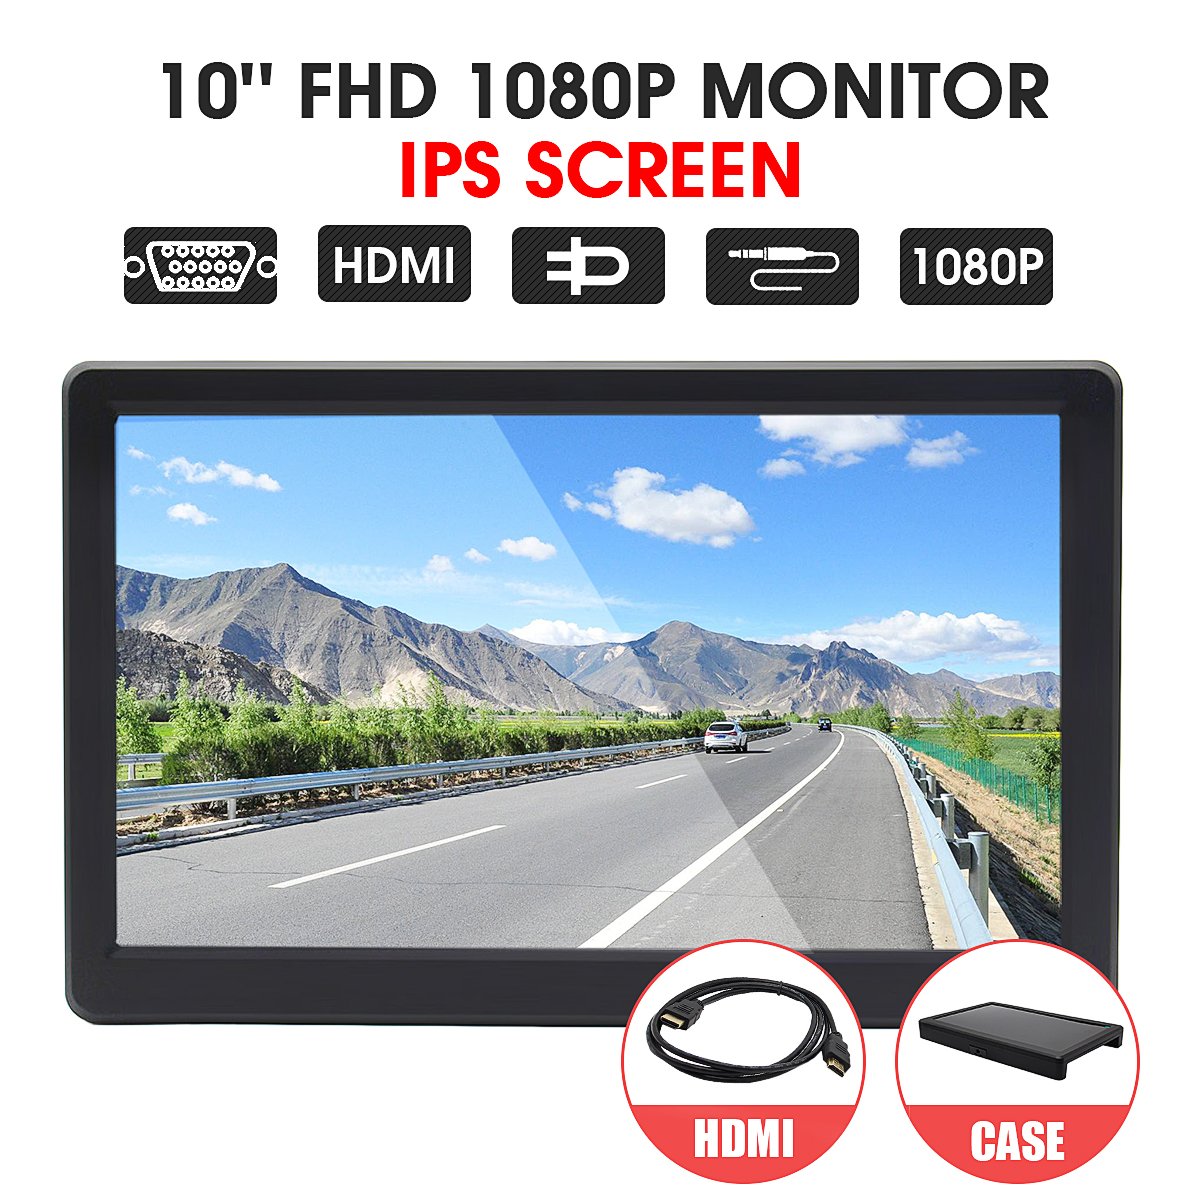 10'' FHD 1080P LED Display Monitor Module IPS HDMI/VGA For Raspberry Pi 3 For PS3 For PS4